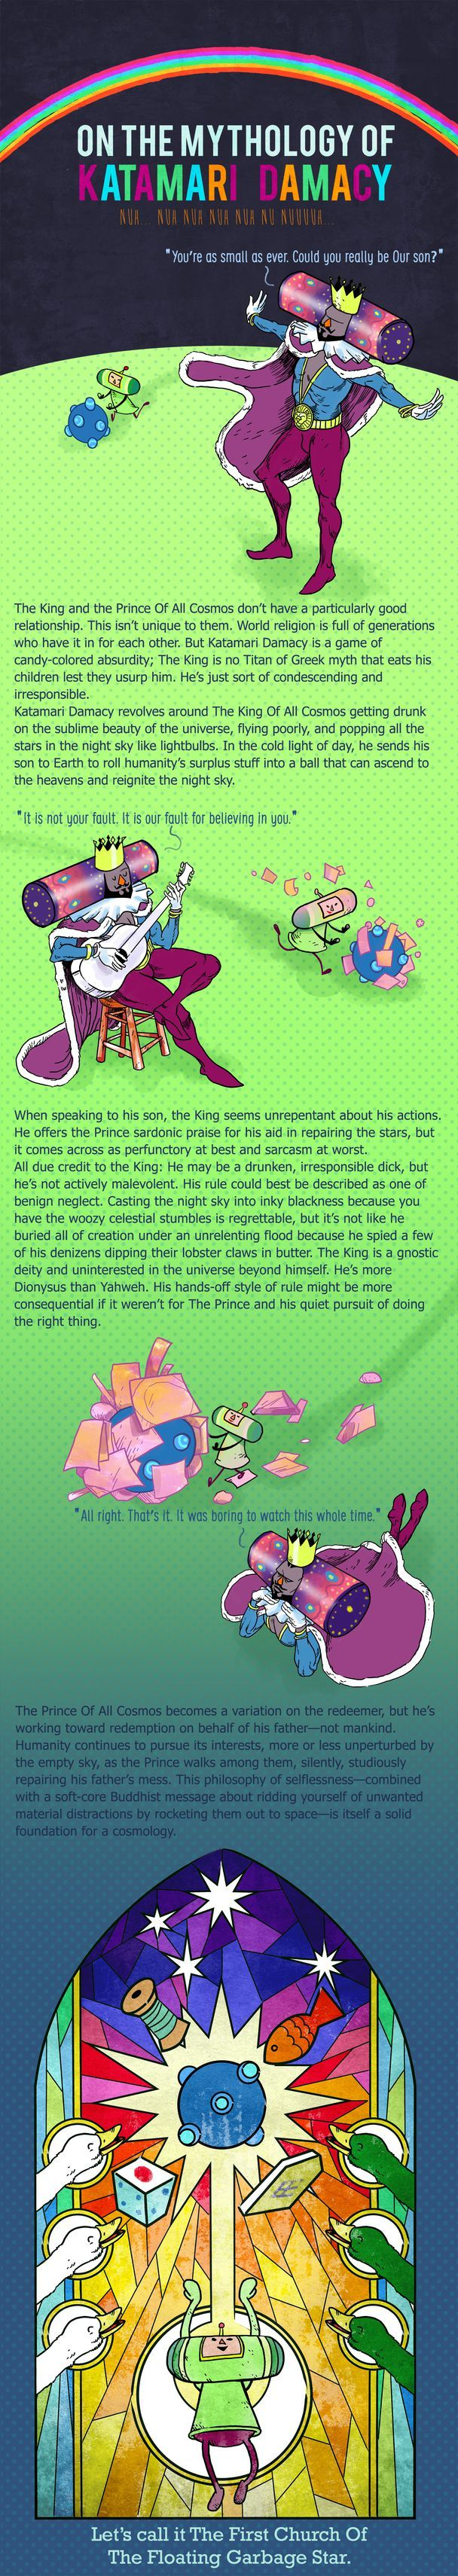 Katamari Damacy's whimsical cosmology is built on a father-son relationship · For Our Consideration · The A.V. Club